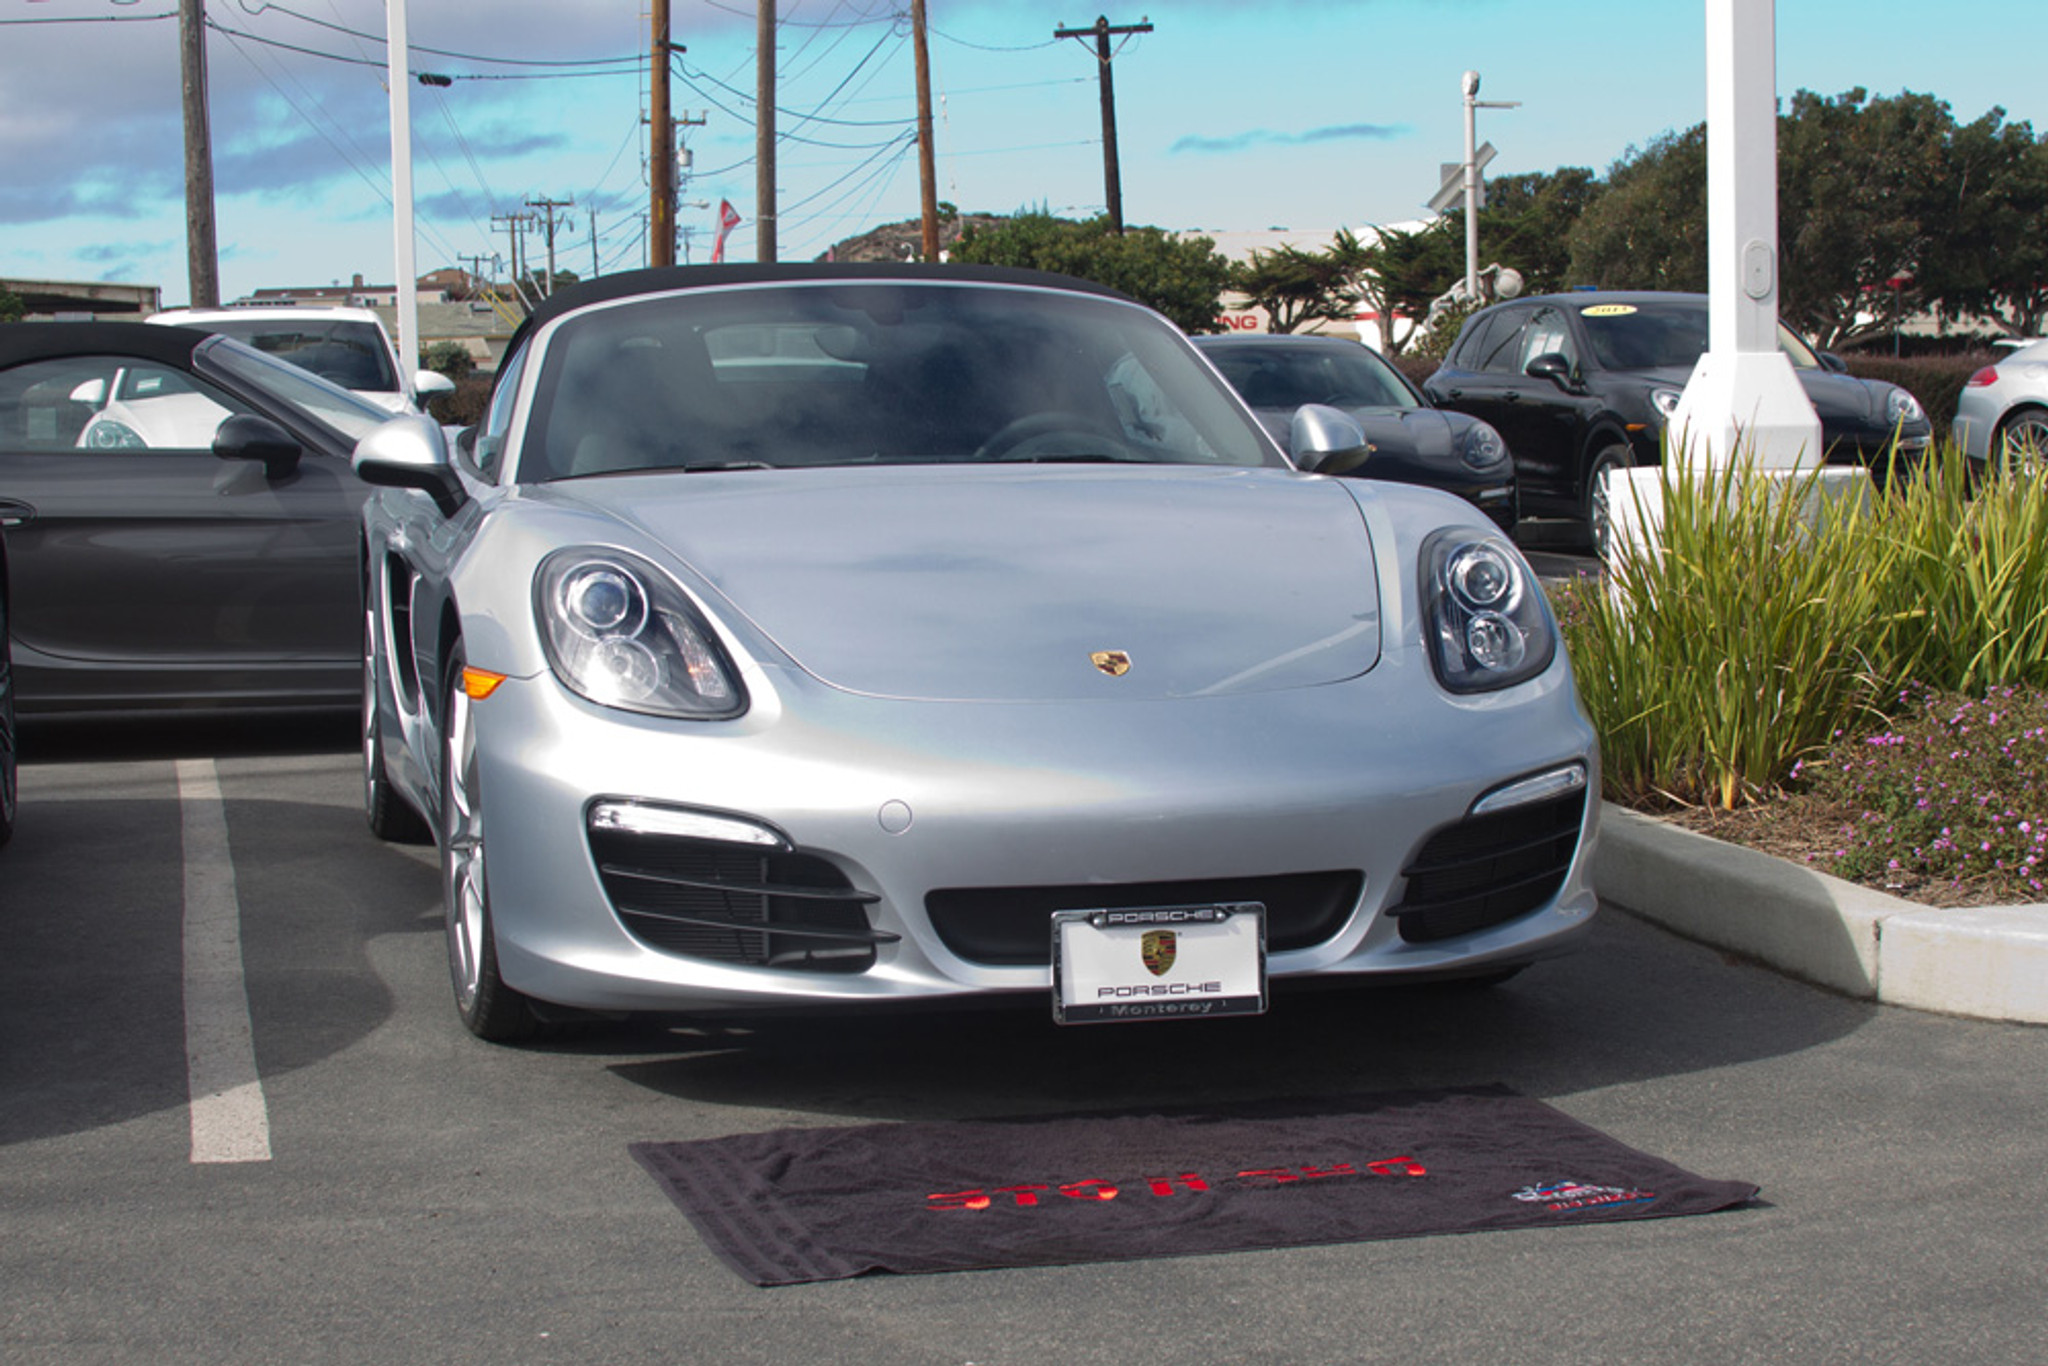 STO-N-Sho Porsche Boxster 2014-2016 Removable License Plate